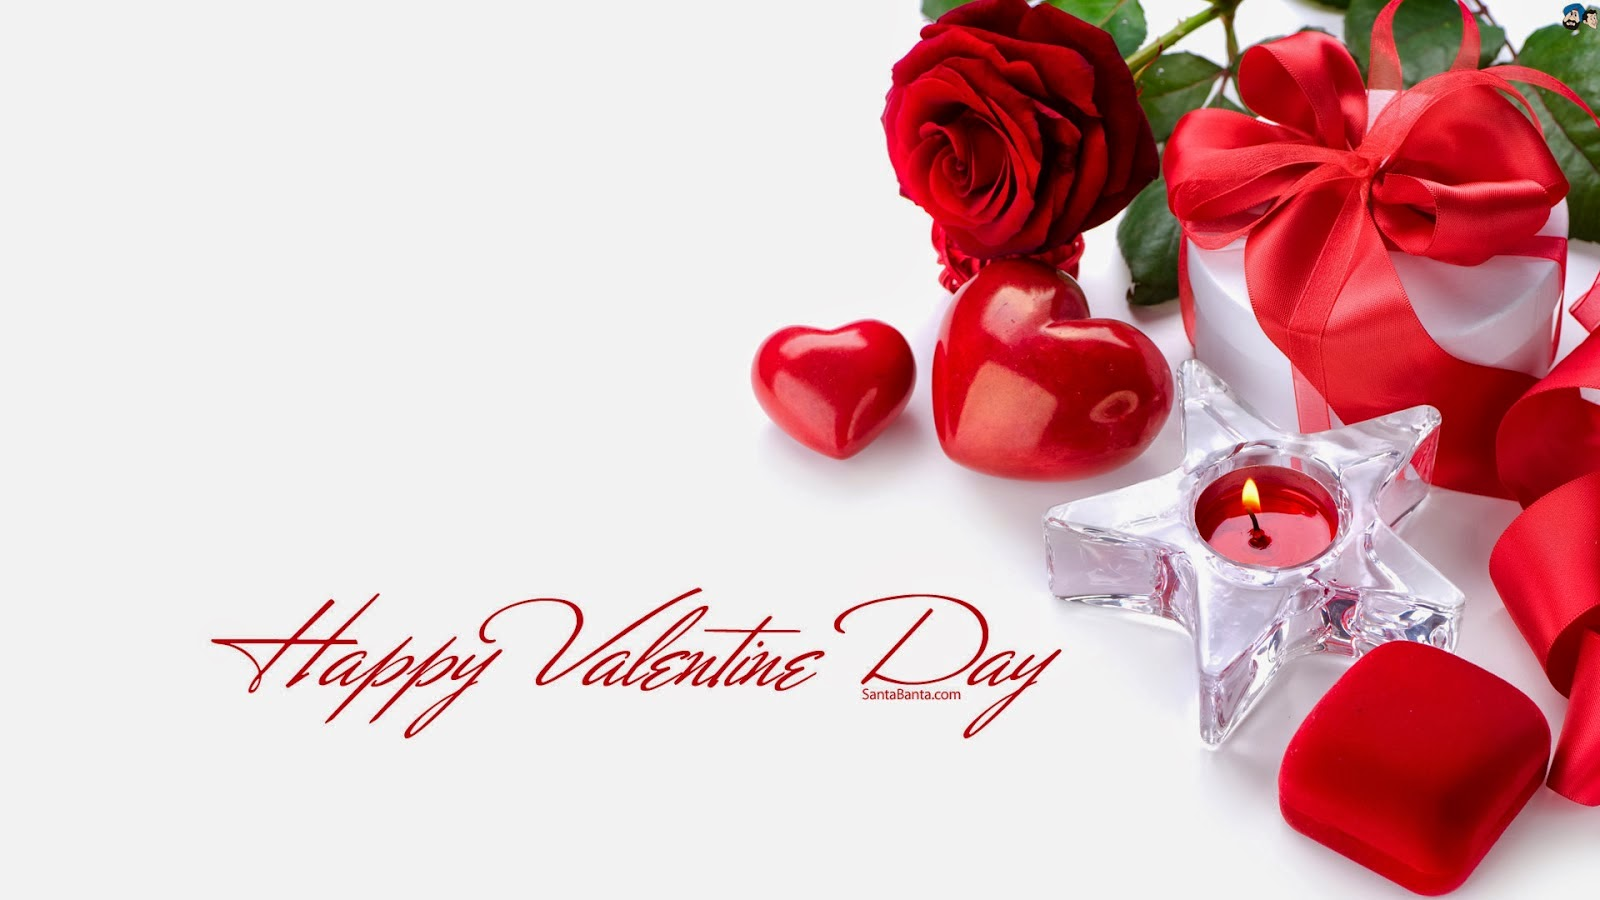 Happy Valentines Day Messages 2015